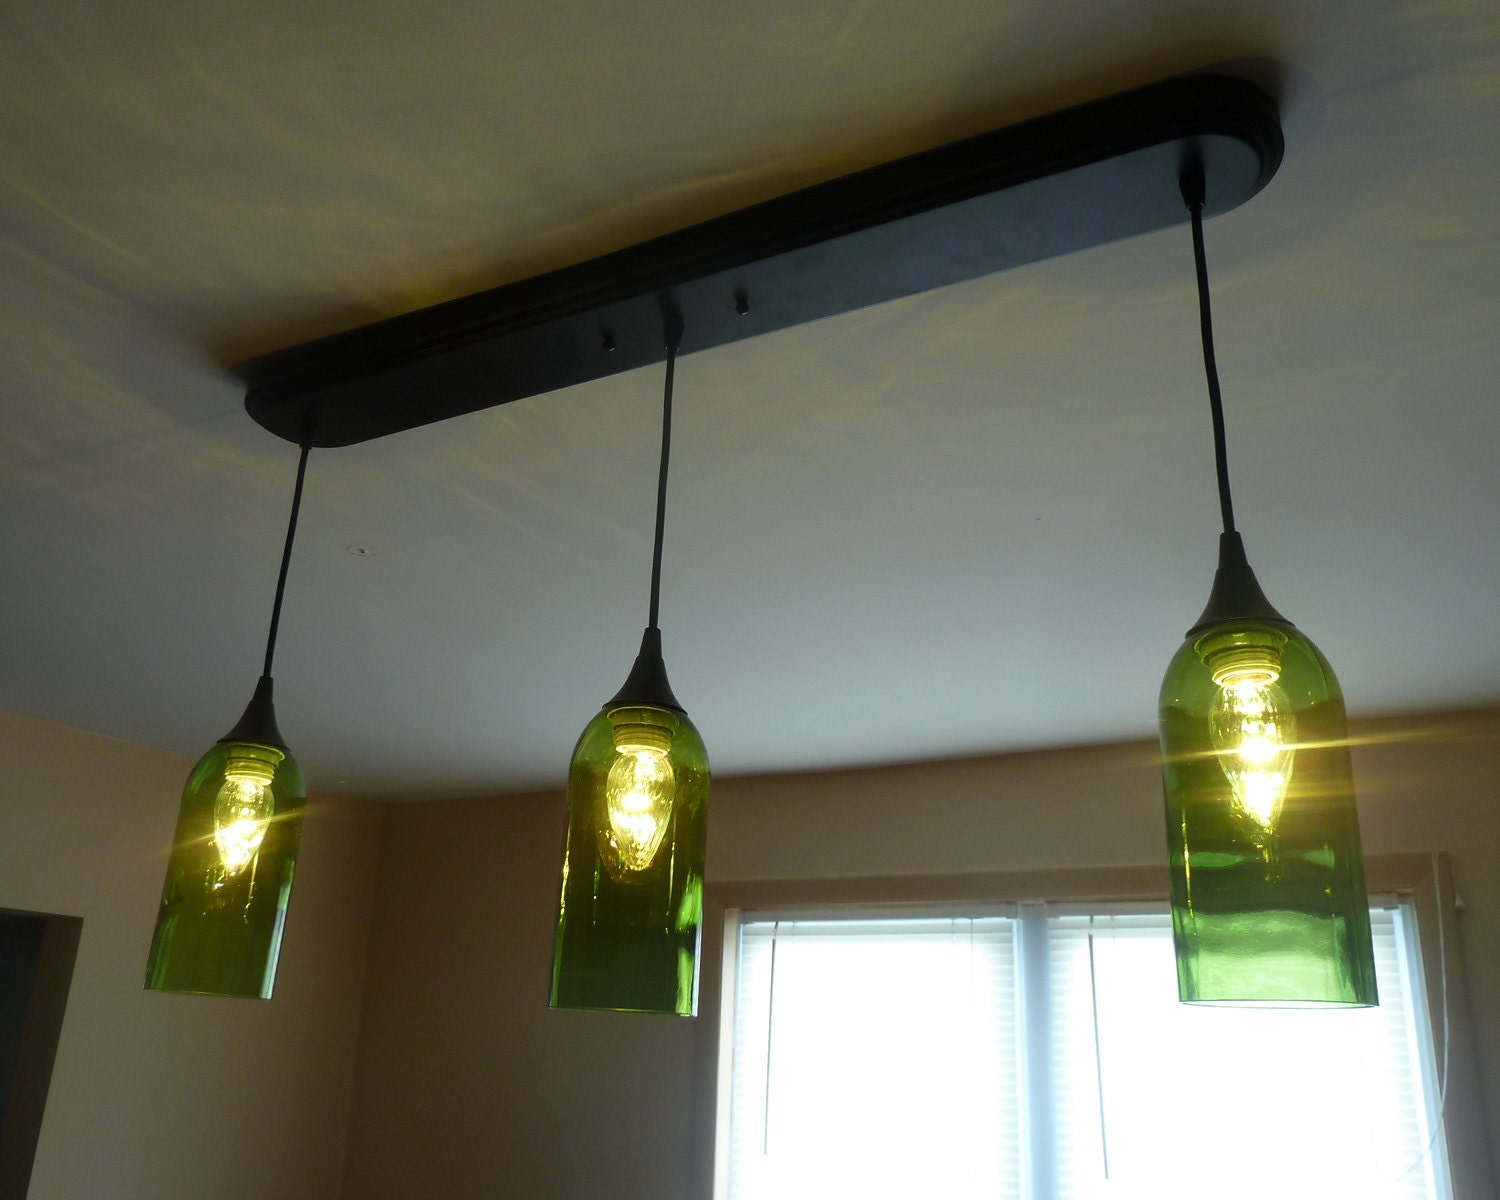 Green Wine Bottle 3 Pendant Light Billiards Table Kitchen by pic76